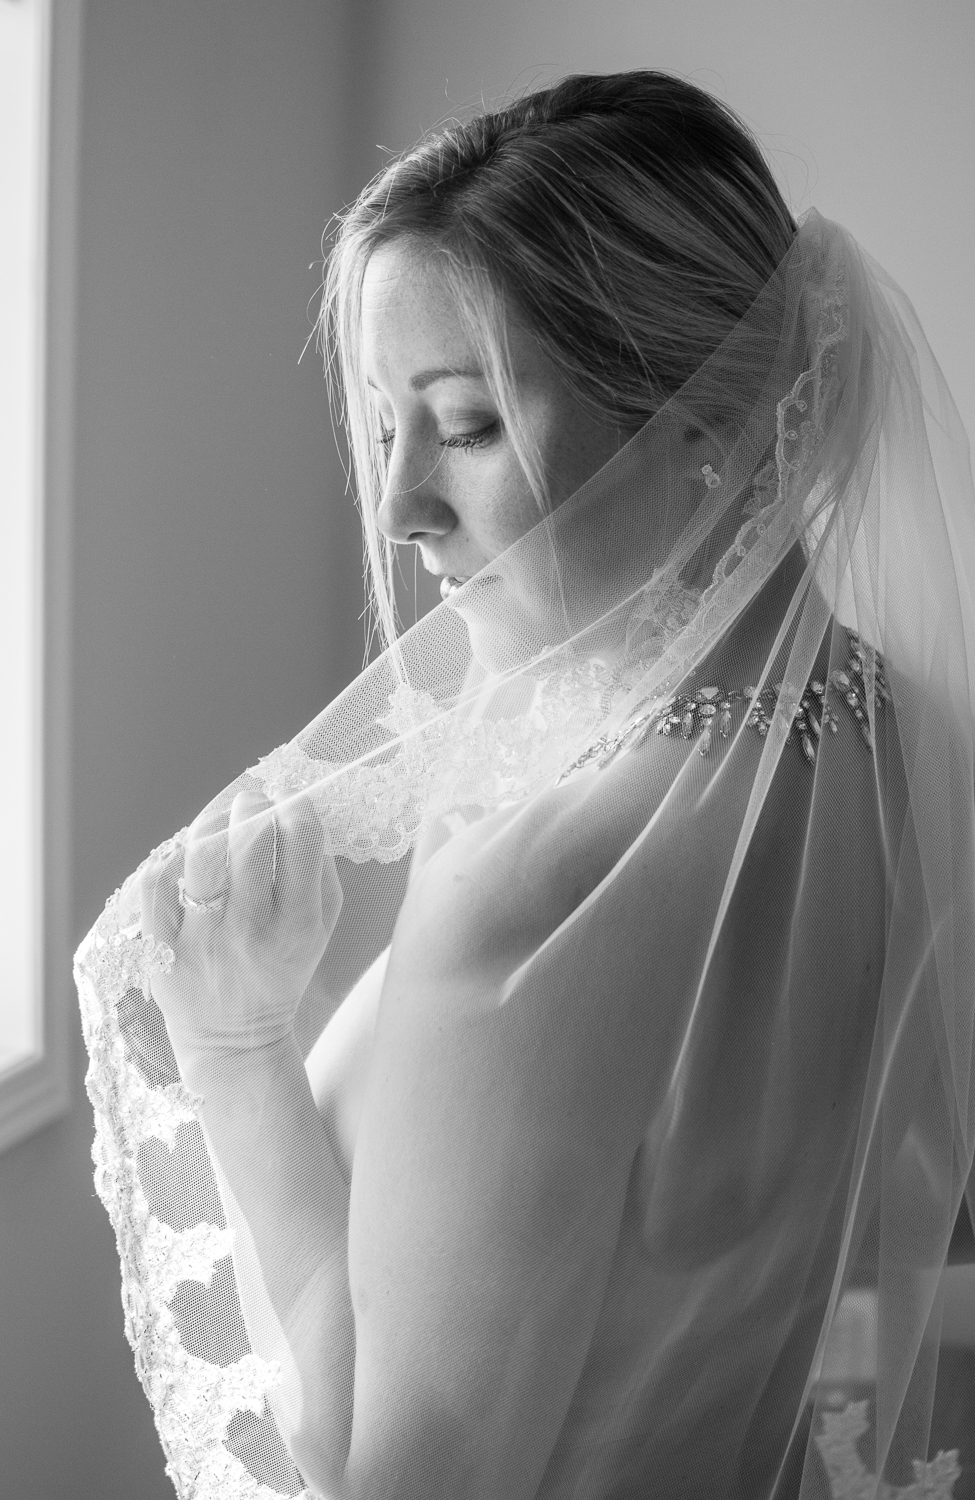 Clarksville TN bridal boudoir photographer // D. Phillips Photography